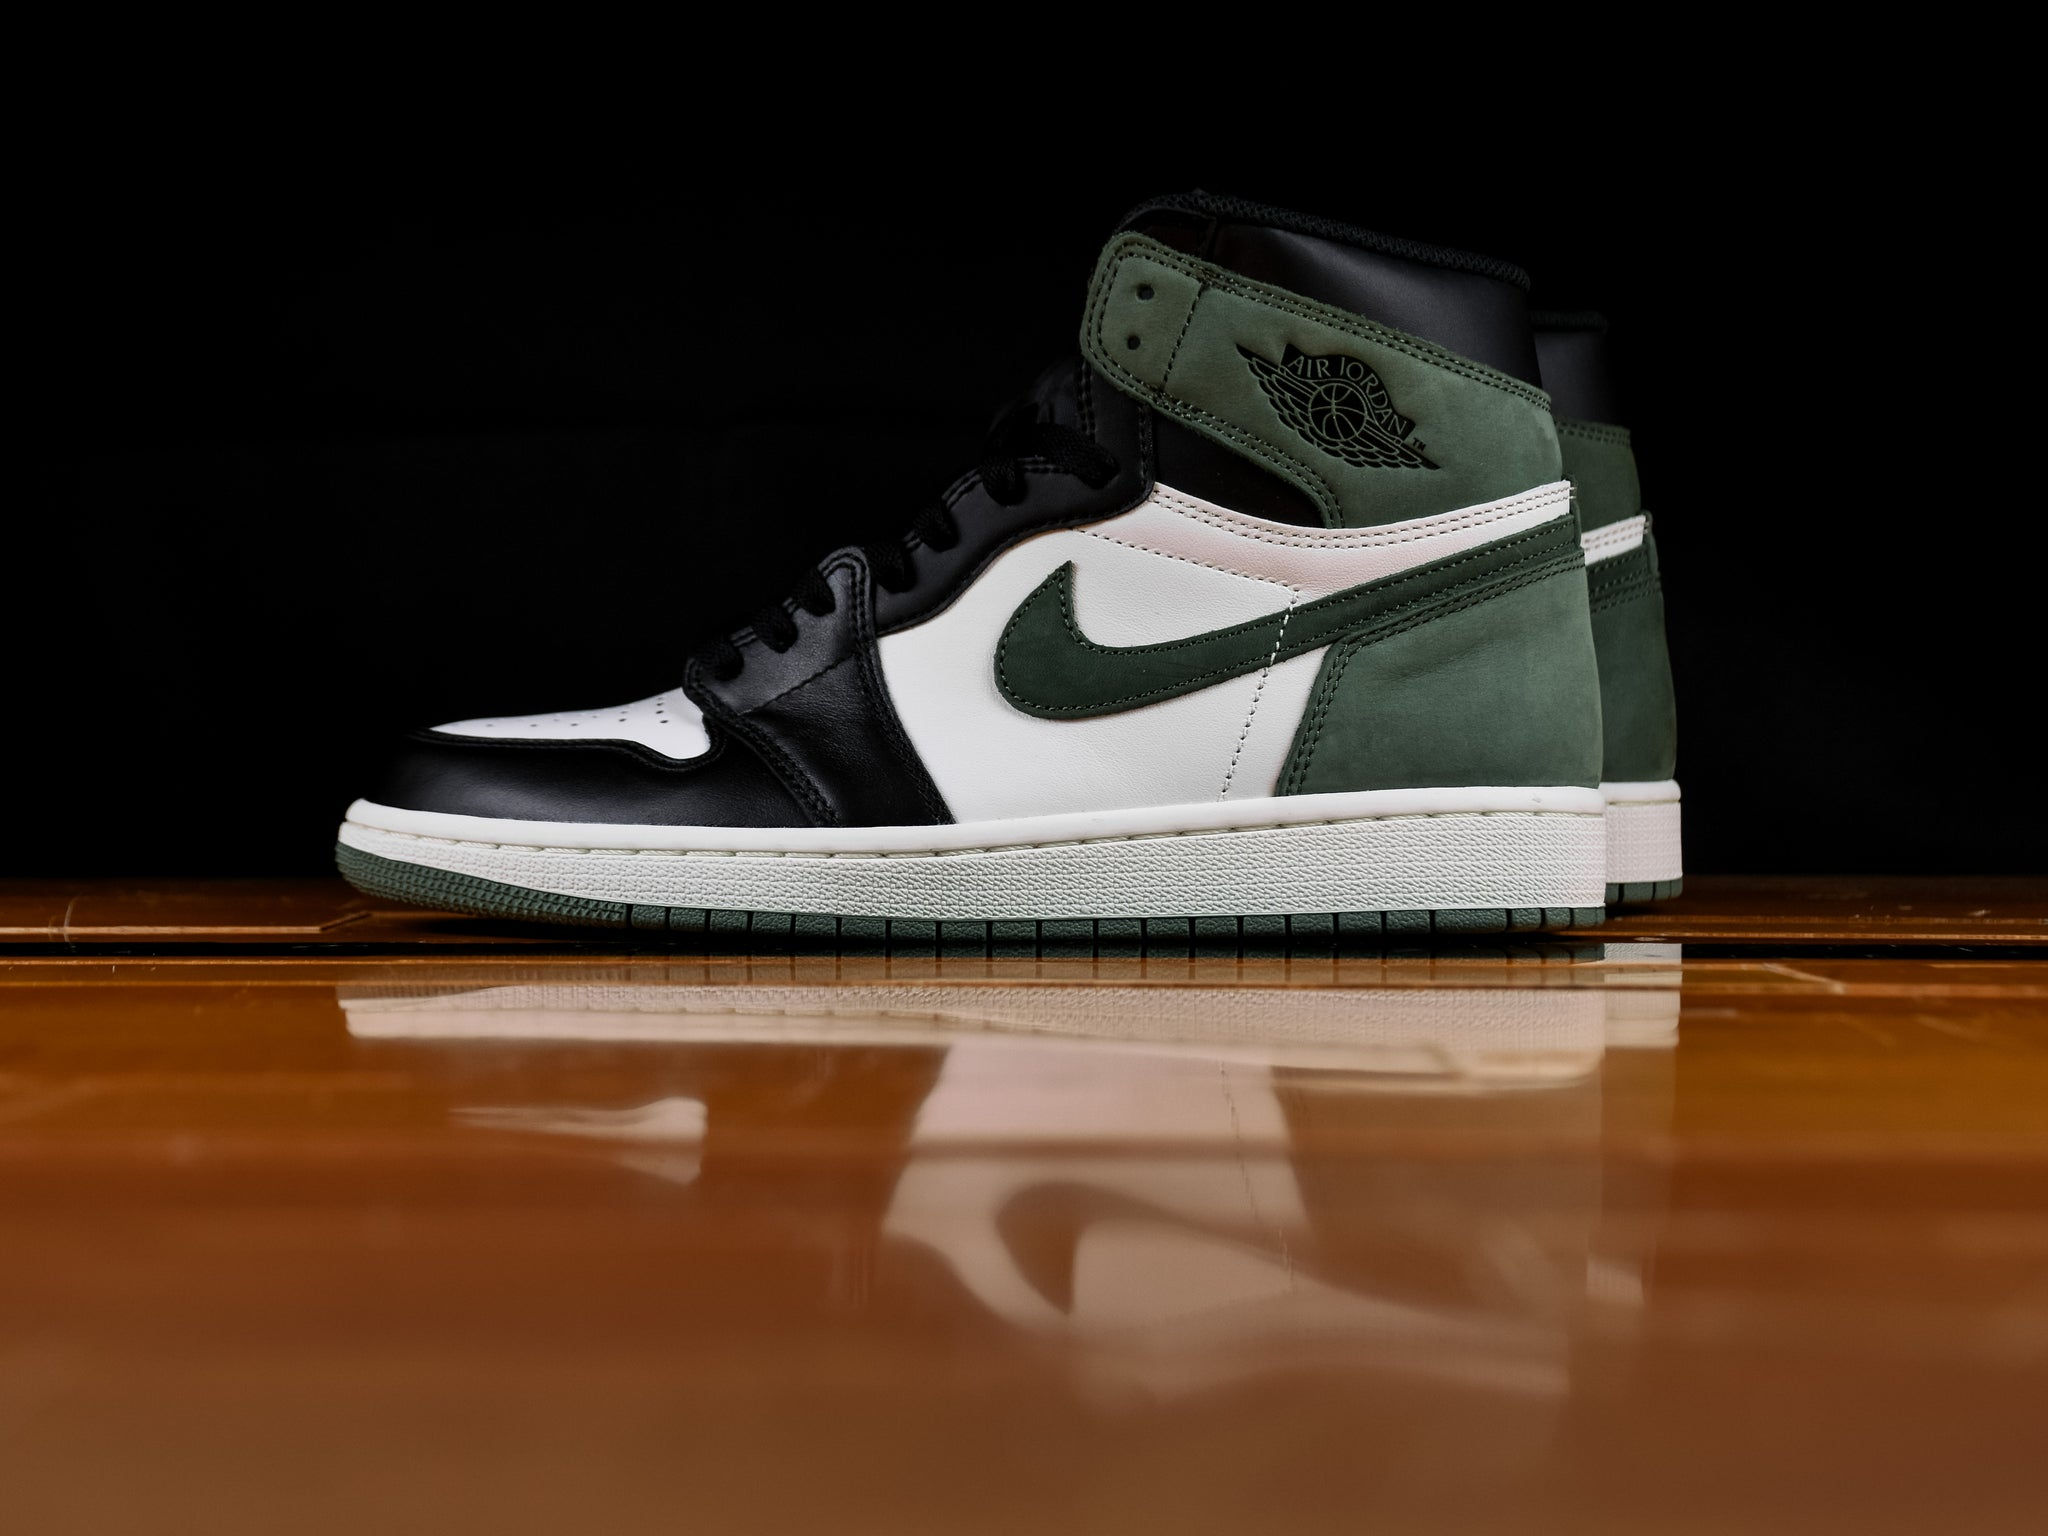 3985d1e4fe45db Men s Air Jordan 1 Retro High OG  Clay Green